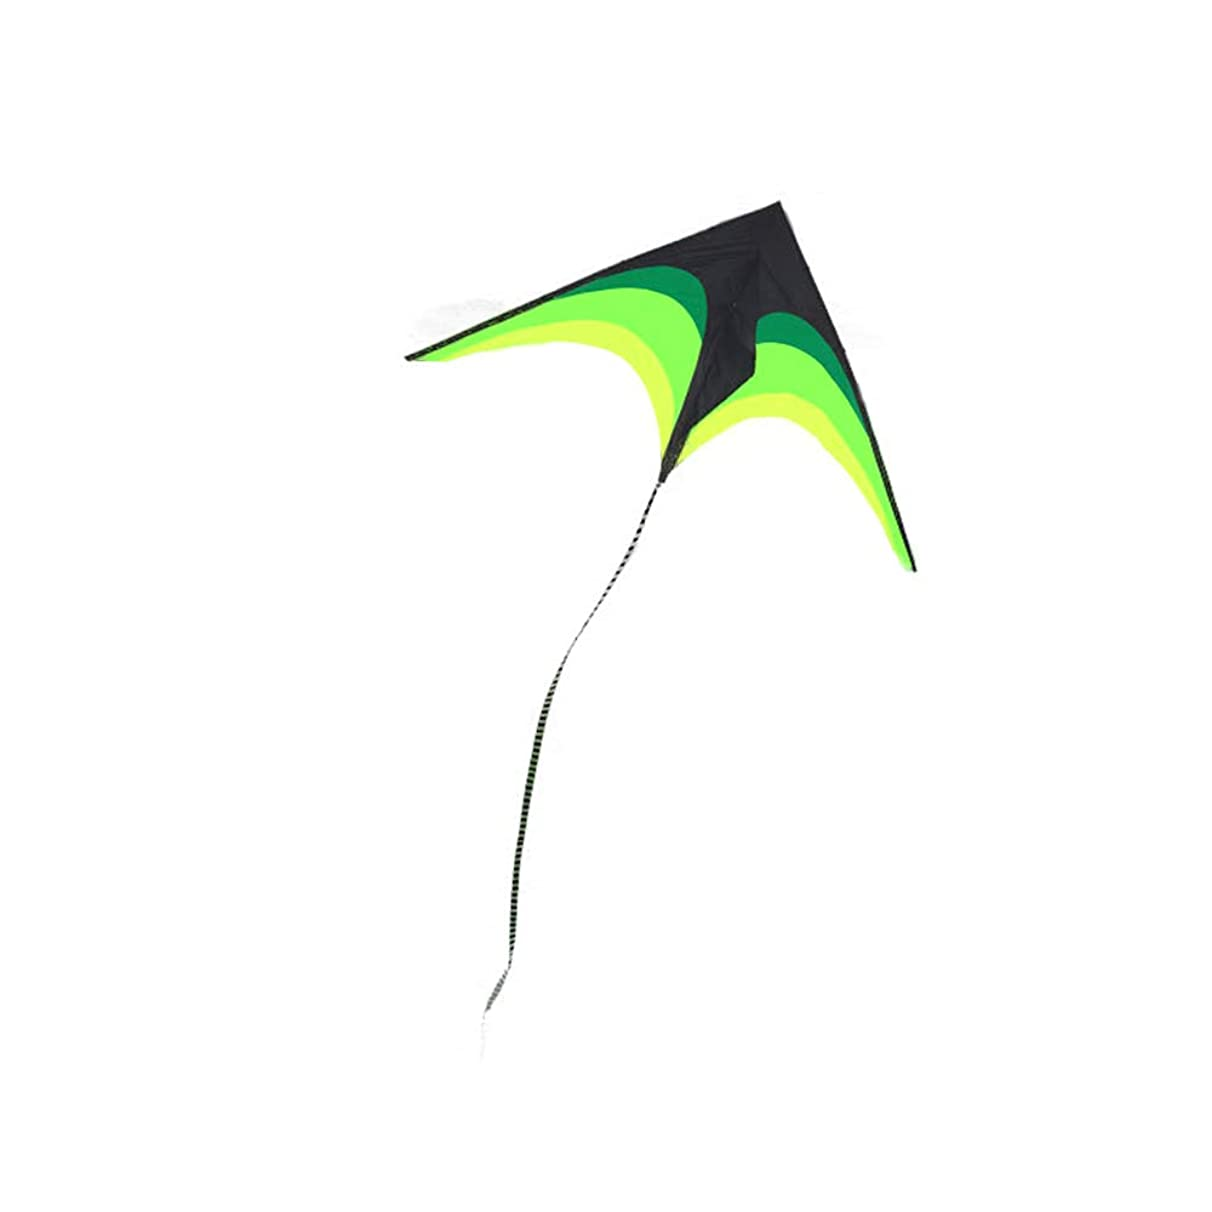 NYJRYBH Children's Huge Triangular Kite - 30m Long Tail - One of Outdoor Sports and Activity Toys - A Good Plan for an Unforgettable Summer Fun - This Magic Kit is Coming Soon